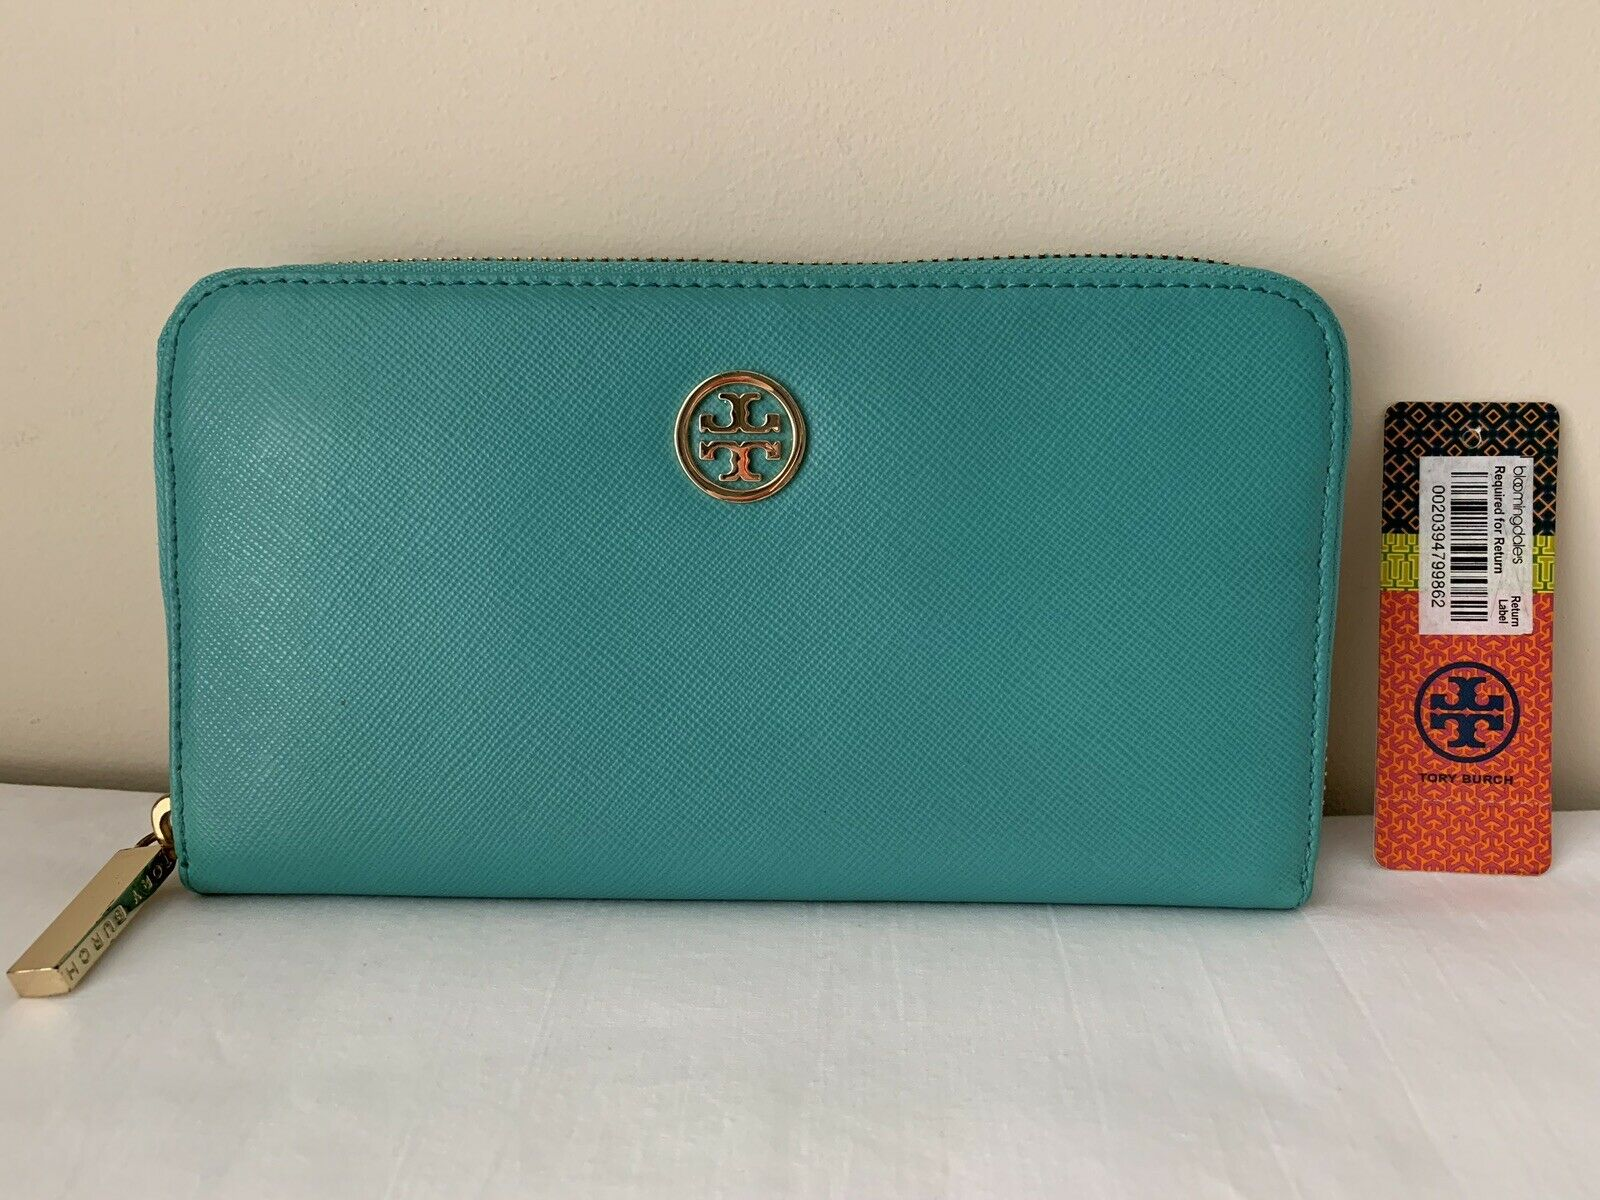 NWT Authen Saffiano Tory Burch Robinson Zip Around Wallet, Turquoise/Tory Navy!